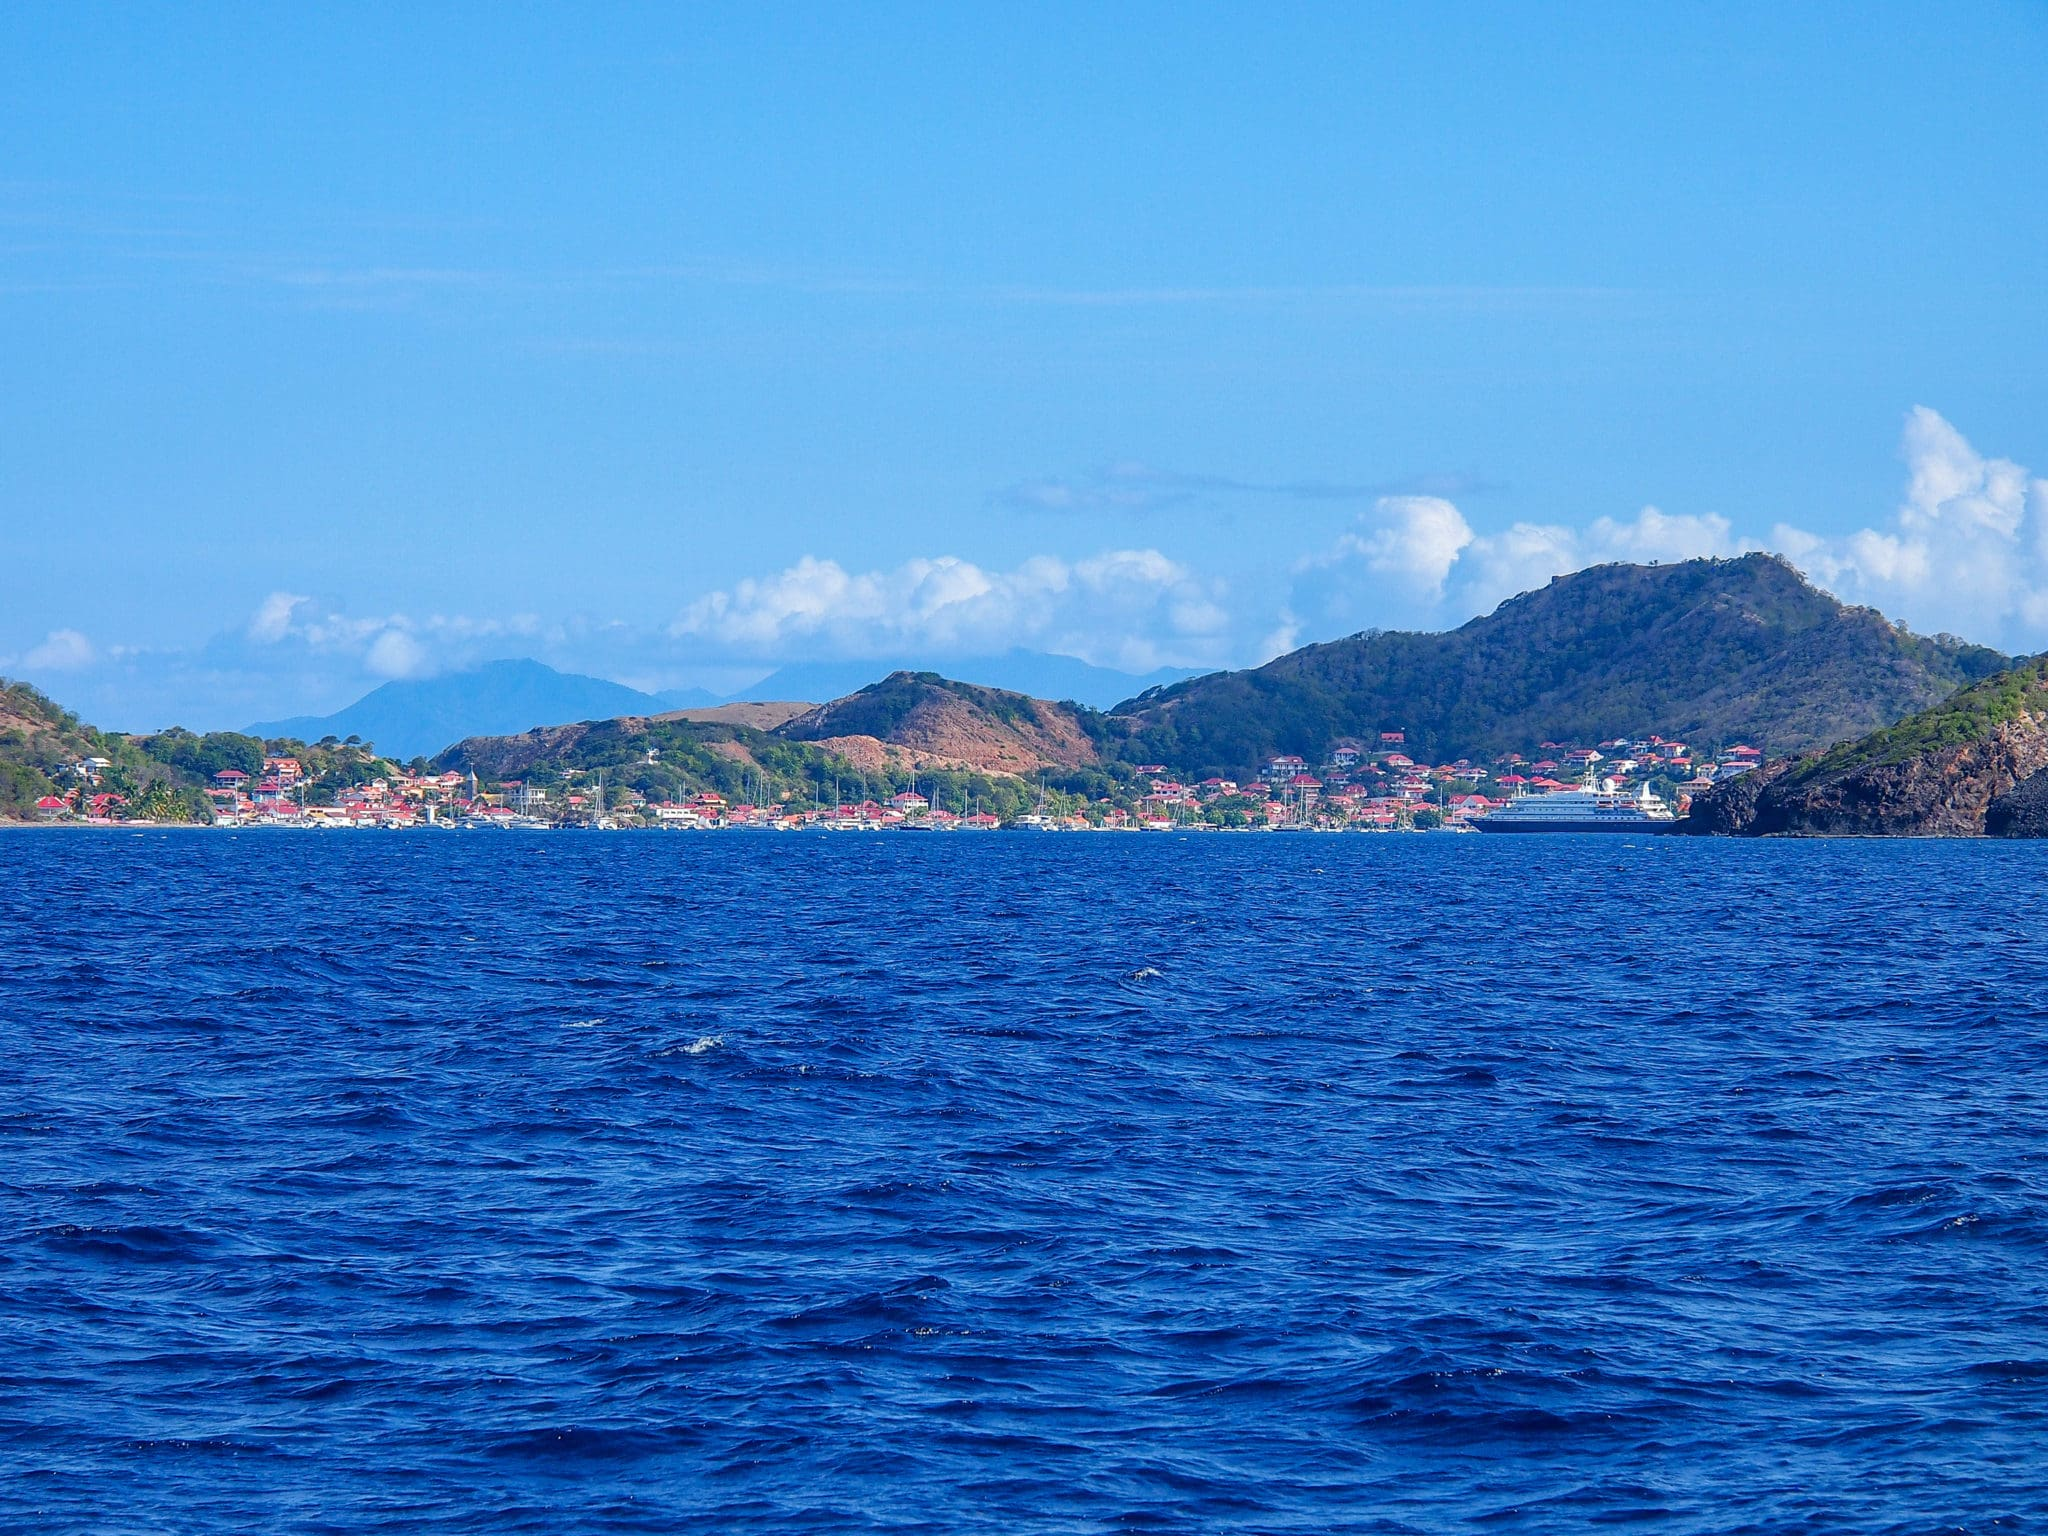 10 Minutes from Terre-de-Haut, Guadeloupe